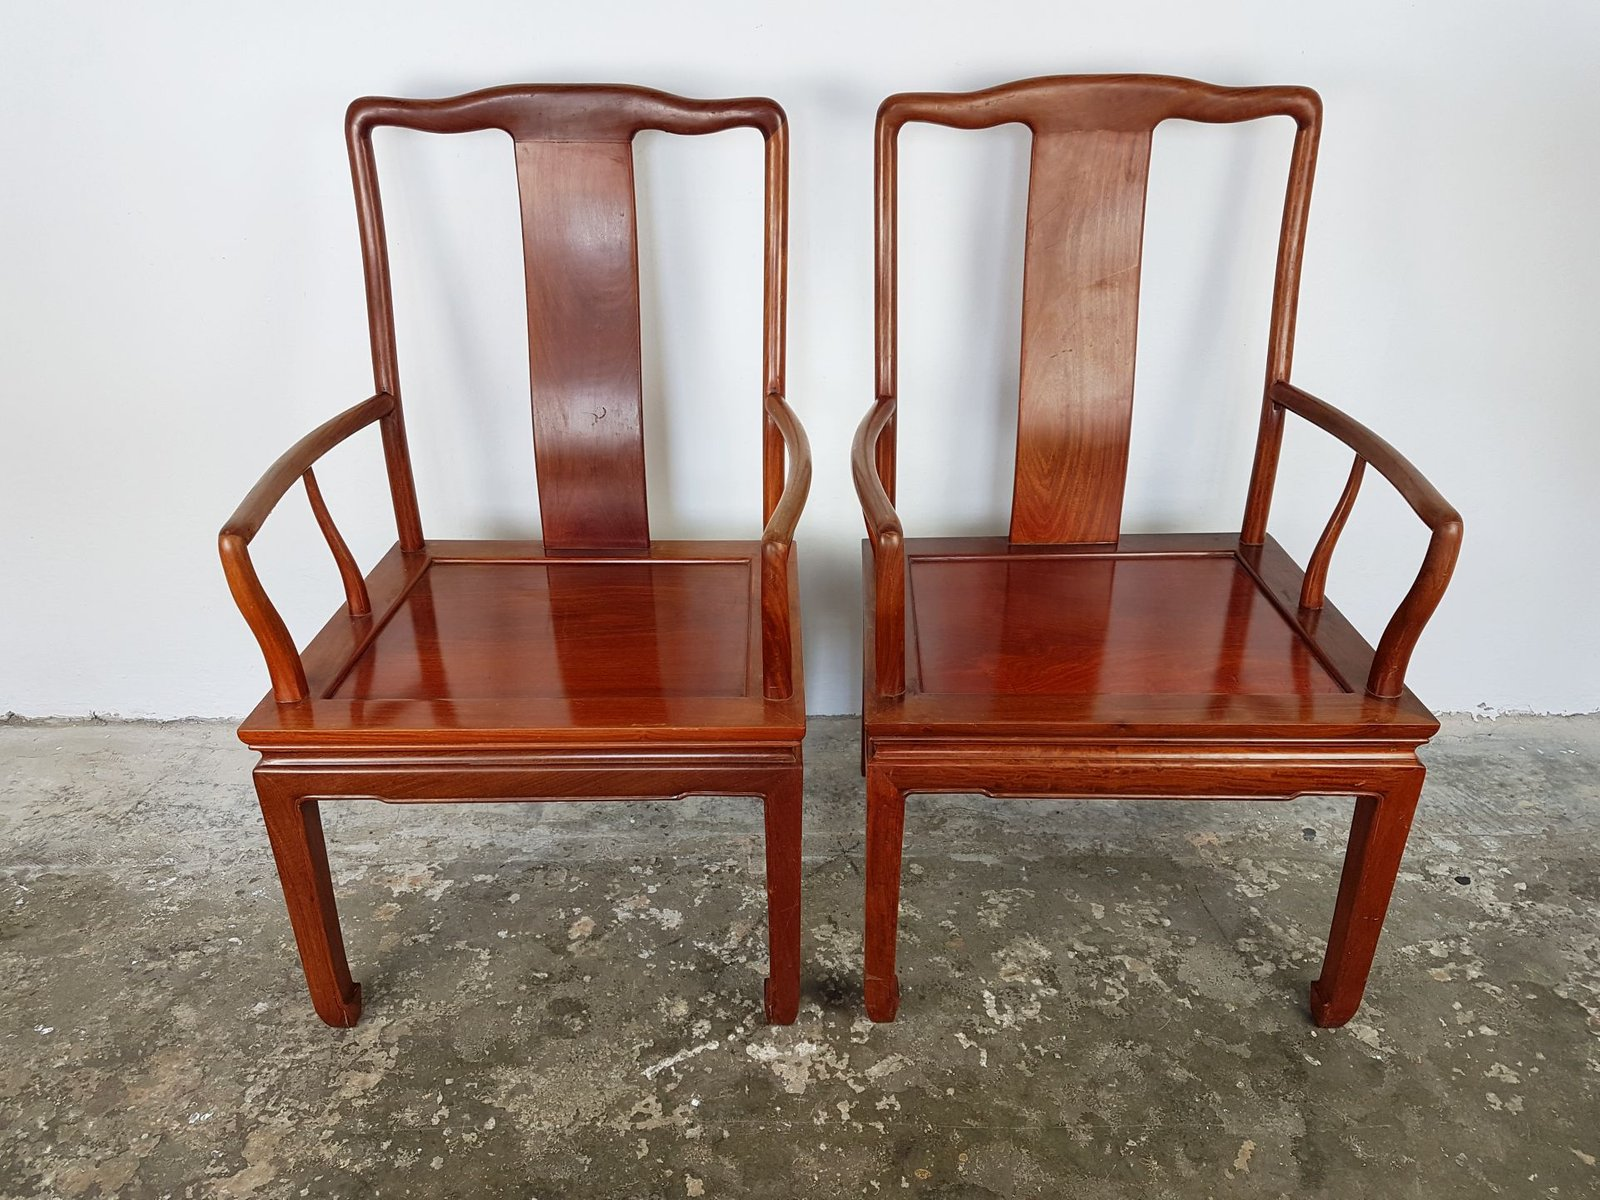 Vintage Chinese Rosewood Desk Chairs Set of 2 for sale at Pamono